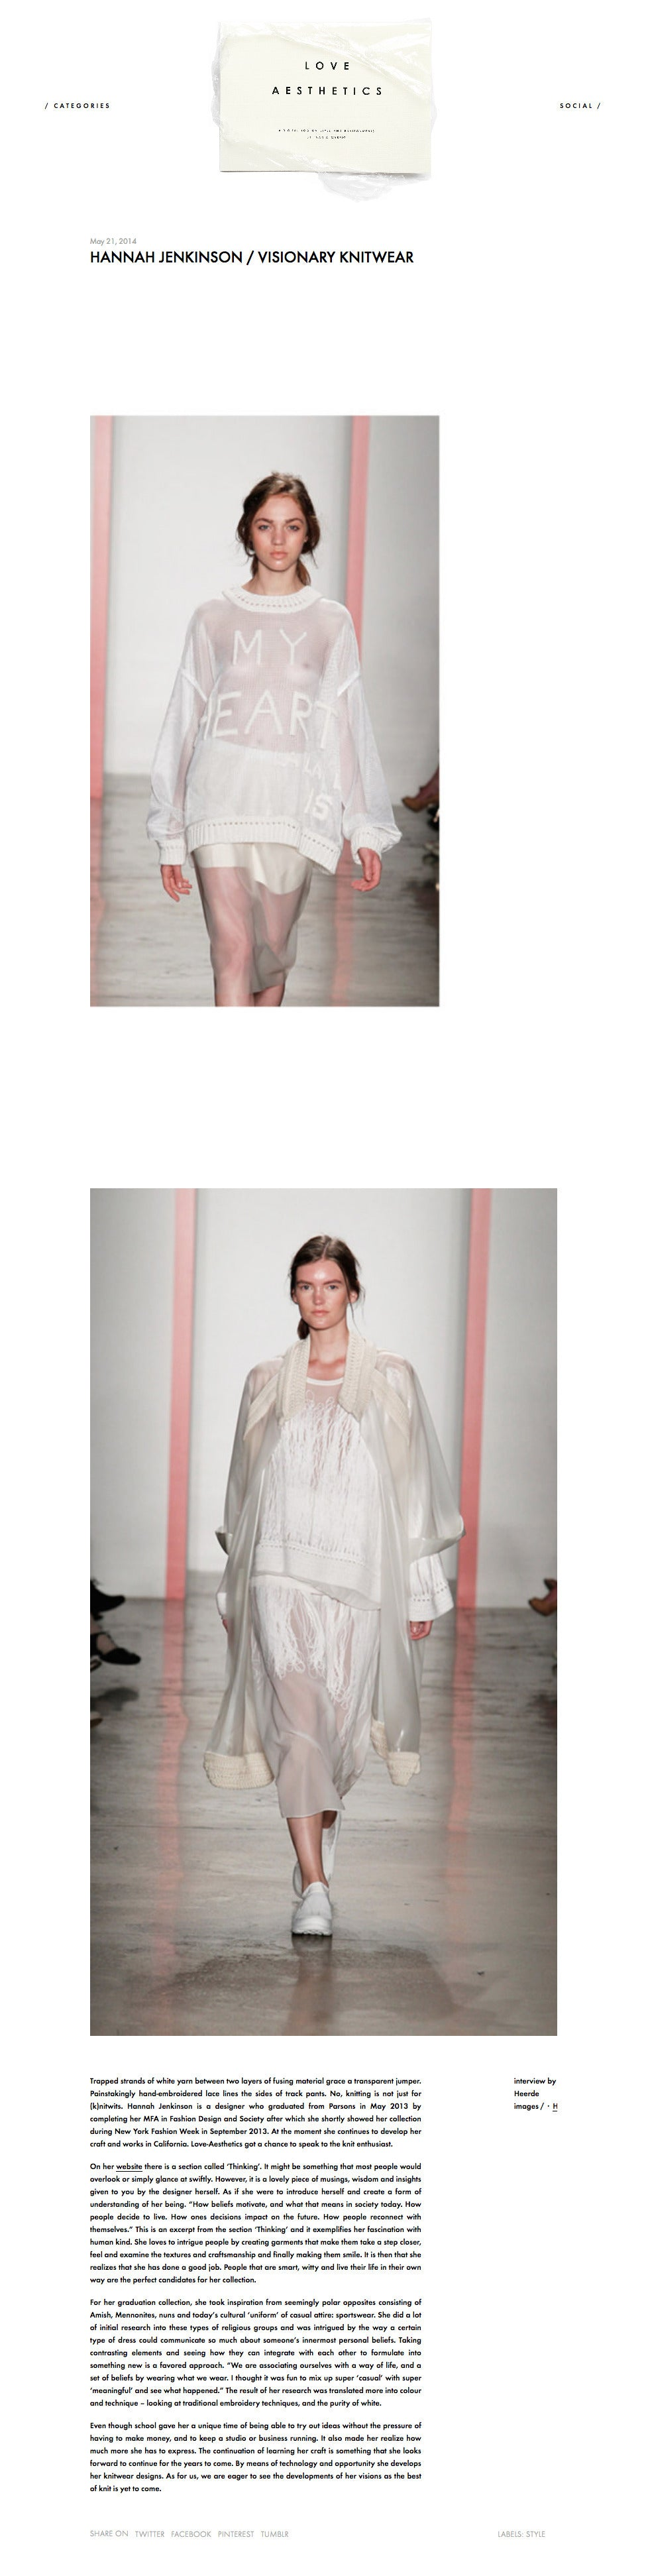 Love Aesthetics Press on Hannah Jenkinson